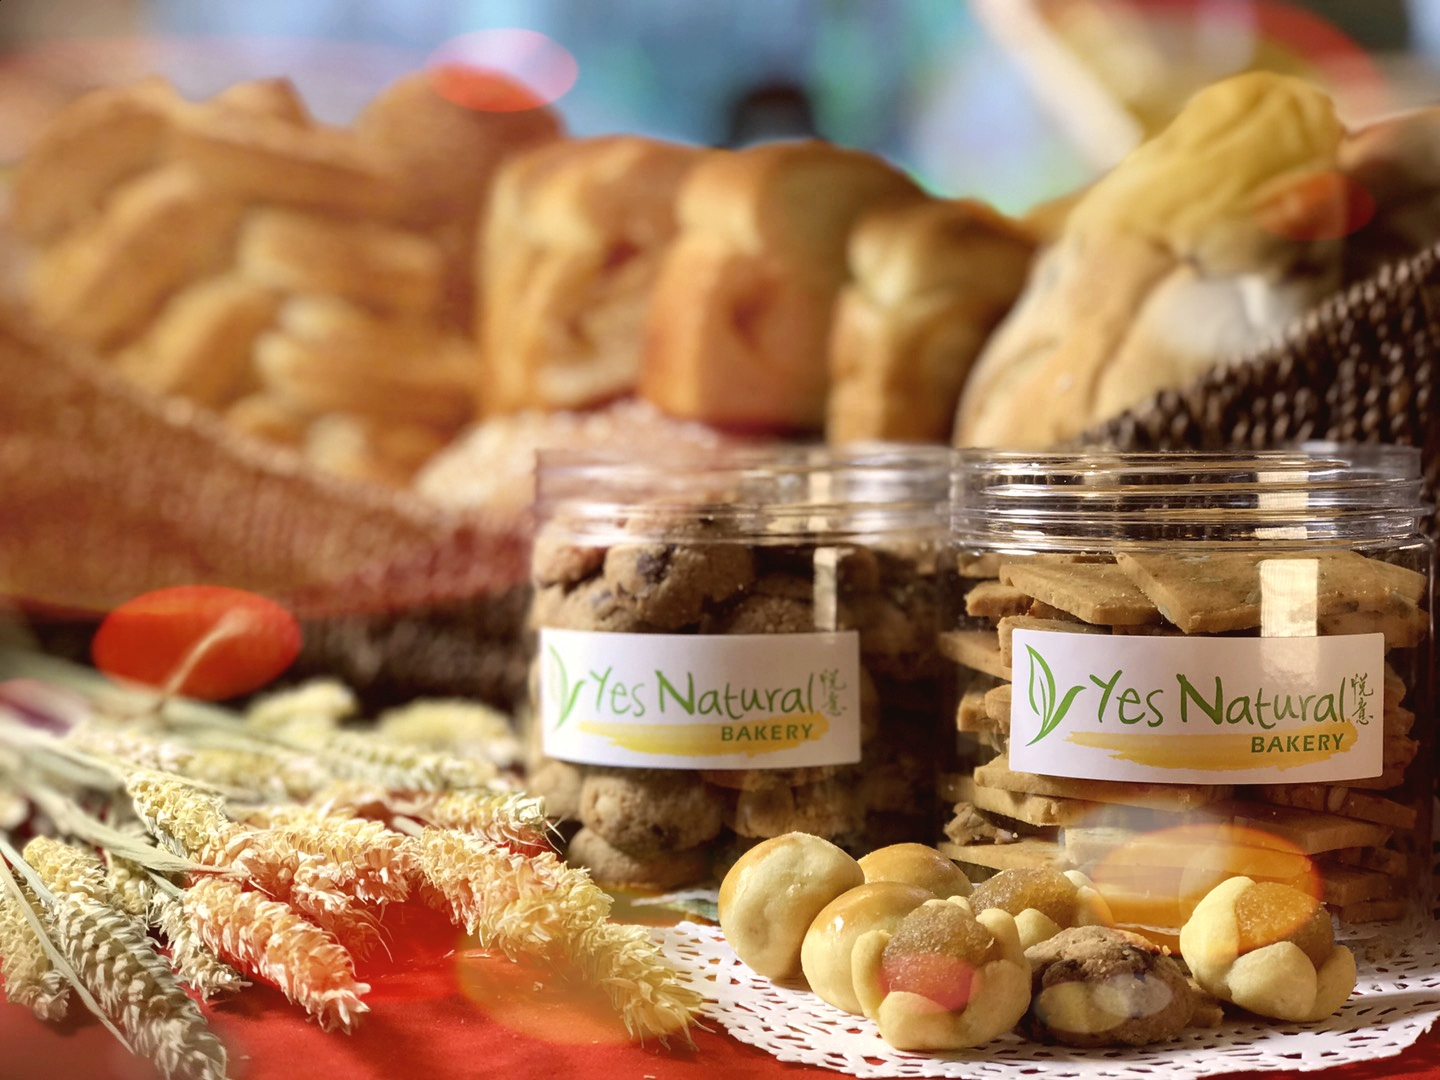 Yes Natural Bakery bread are healthy without any preservatives nor additives.悦意烘培面包,健康无添加物。